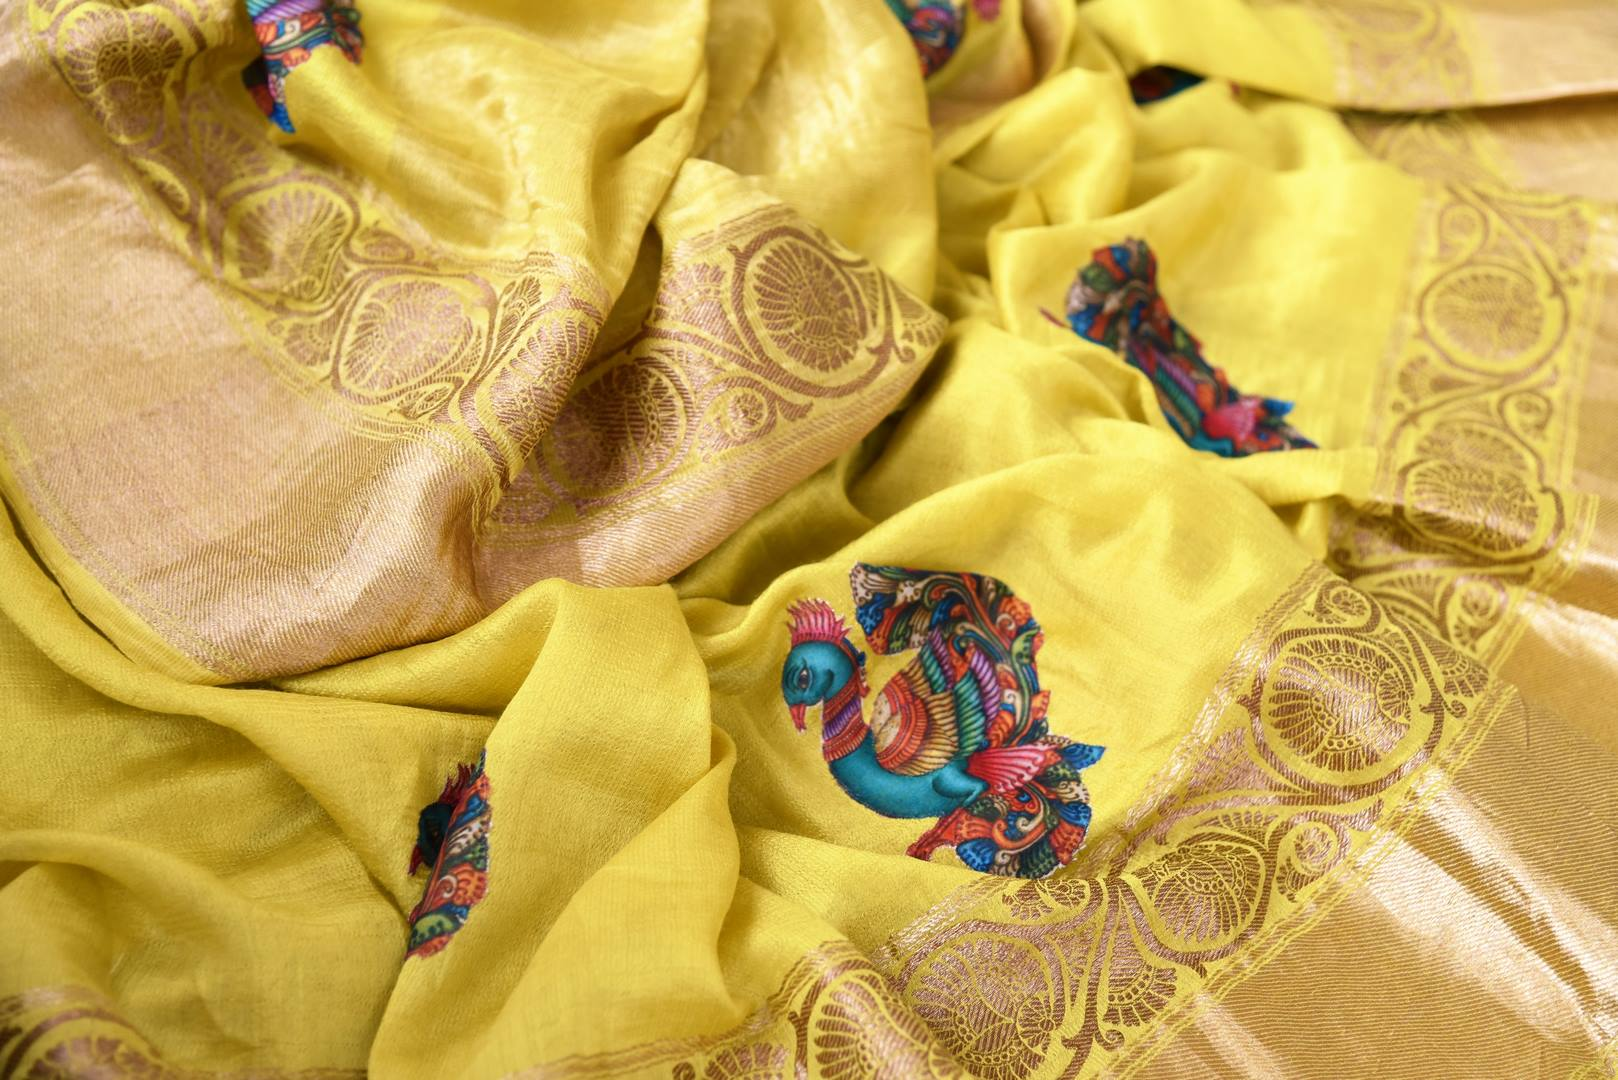 Buy yellow muga Banarasi sari online in USA with applique work. The beautiful saree is a perfect choice for festive and special occasions. For more such Indian designer sarees in USA, shop from the exquisite collection at Pure Elegance Indian clothing store.-details